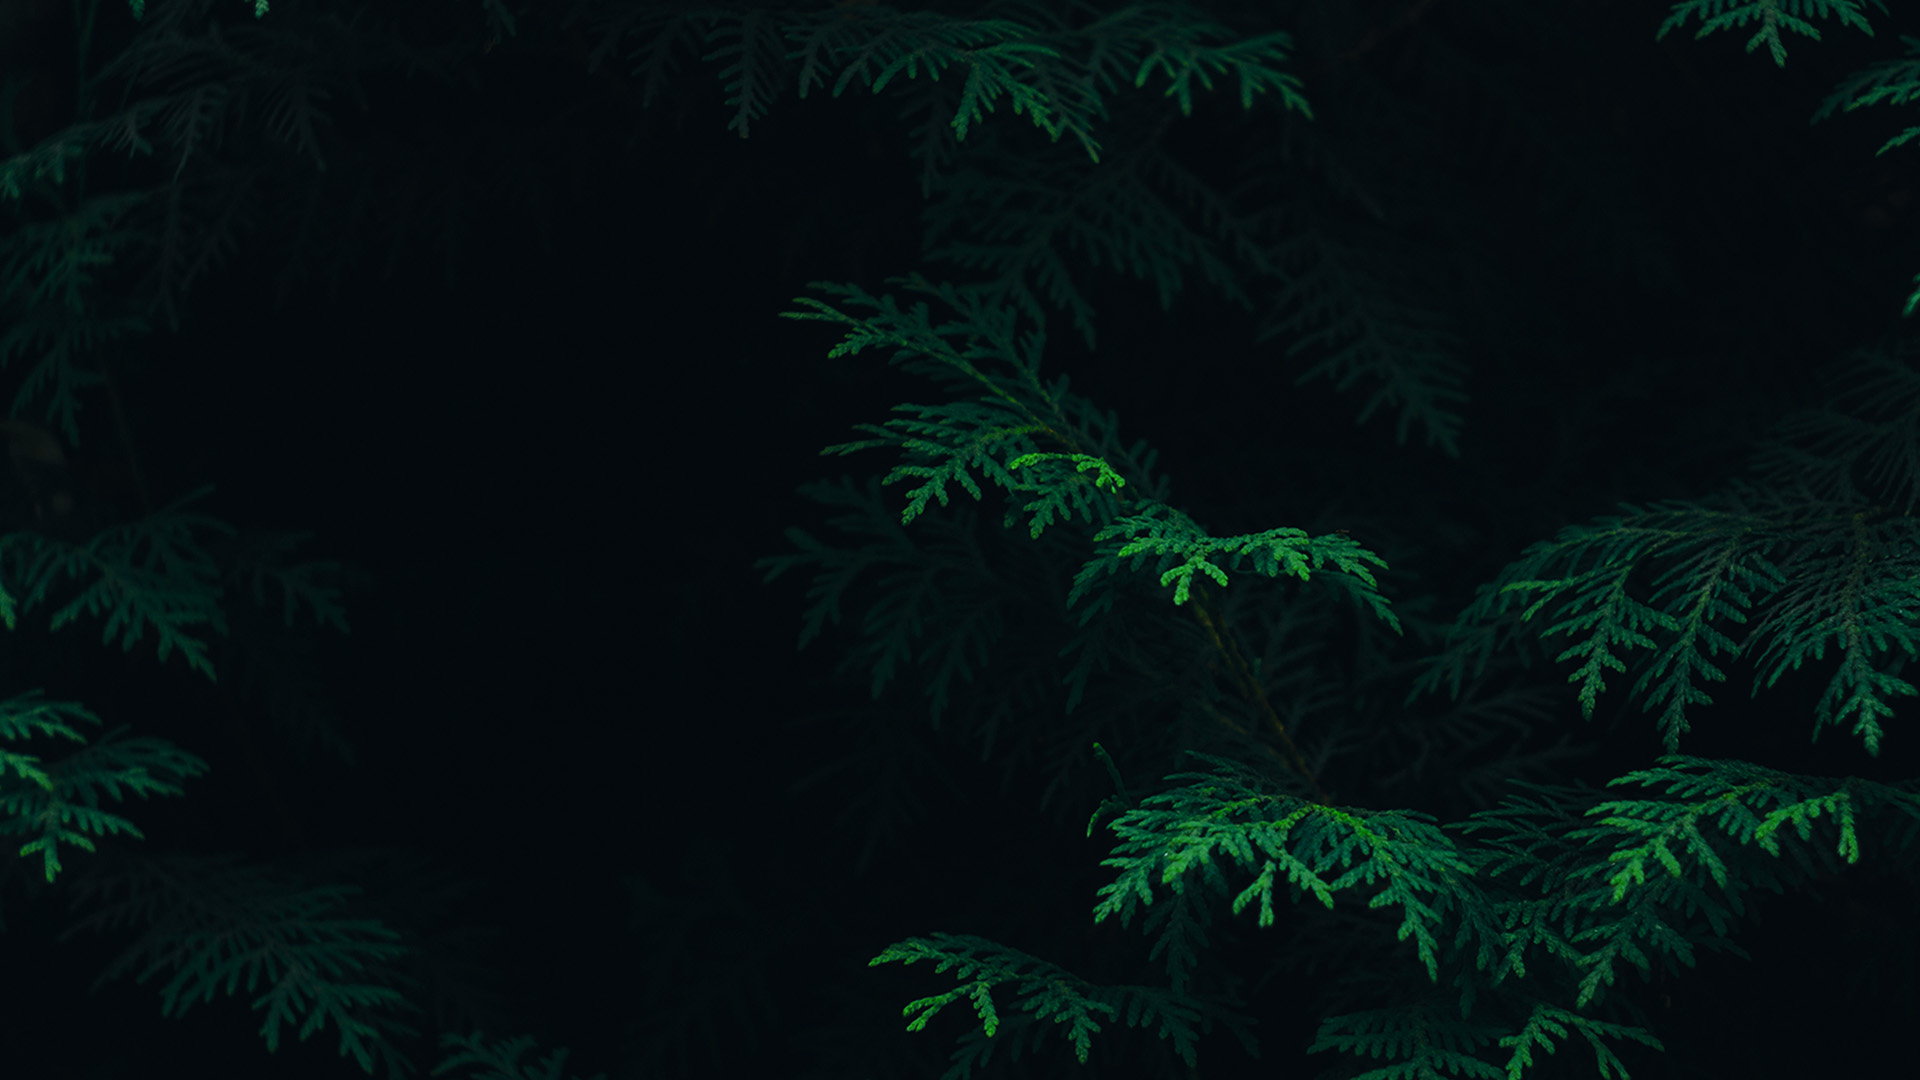 Dark Green Nature Wallpapers Mobile: 2560 X 1600